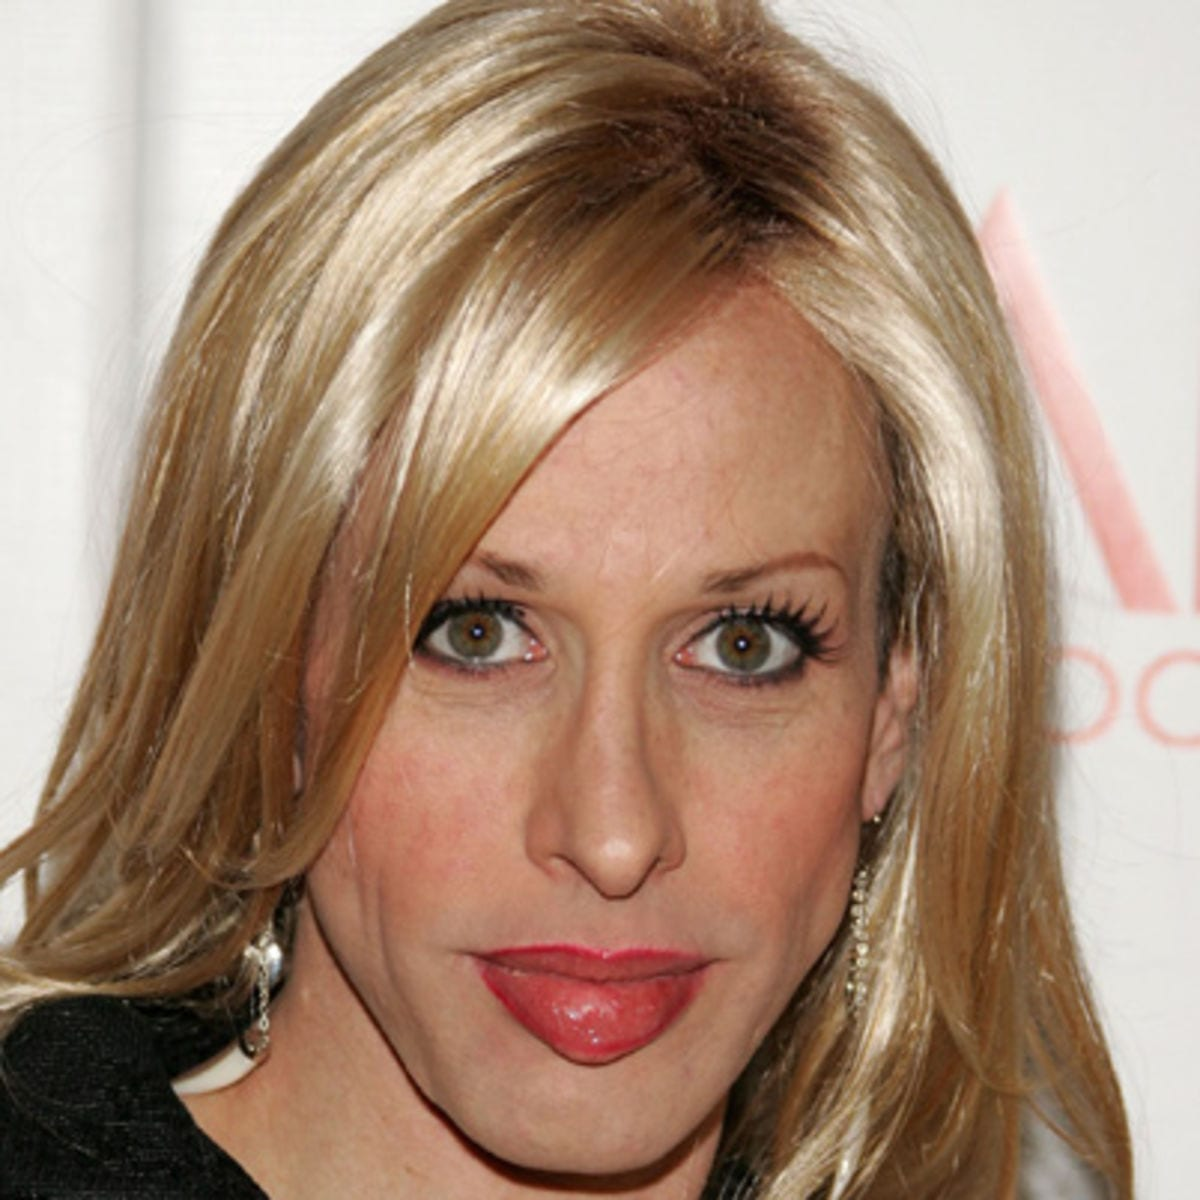 UPDATE: Trans actor and activist Alexis Arquette has died